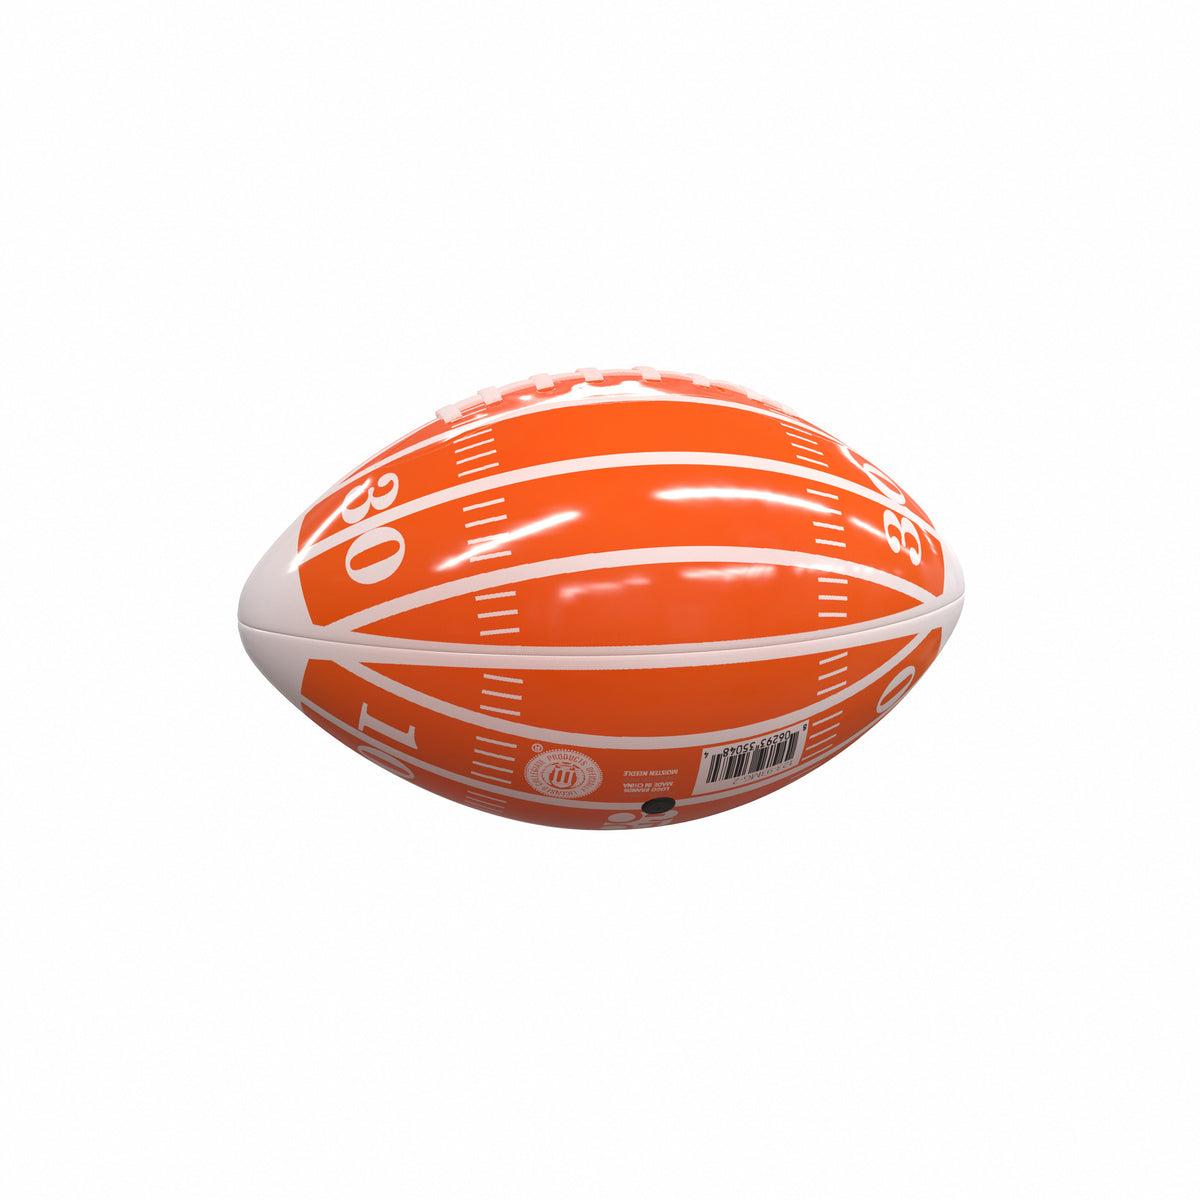 Clemson Tigers Mini Glossy Football